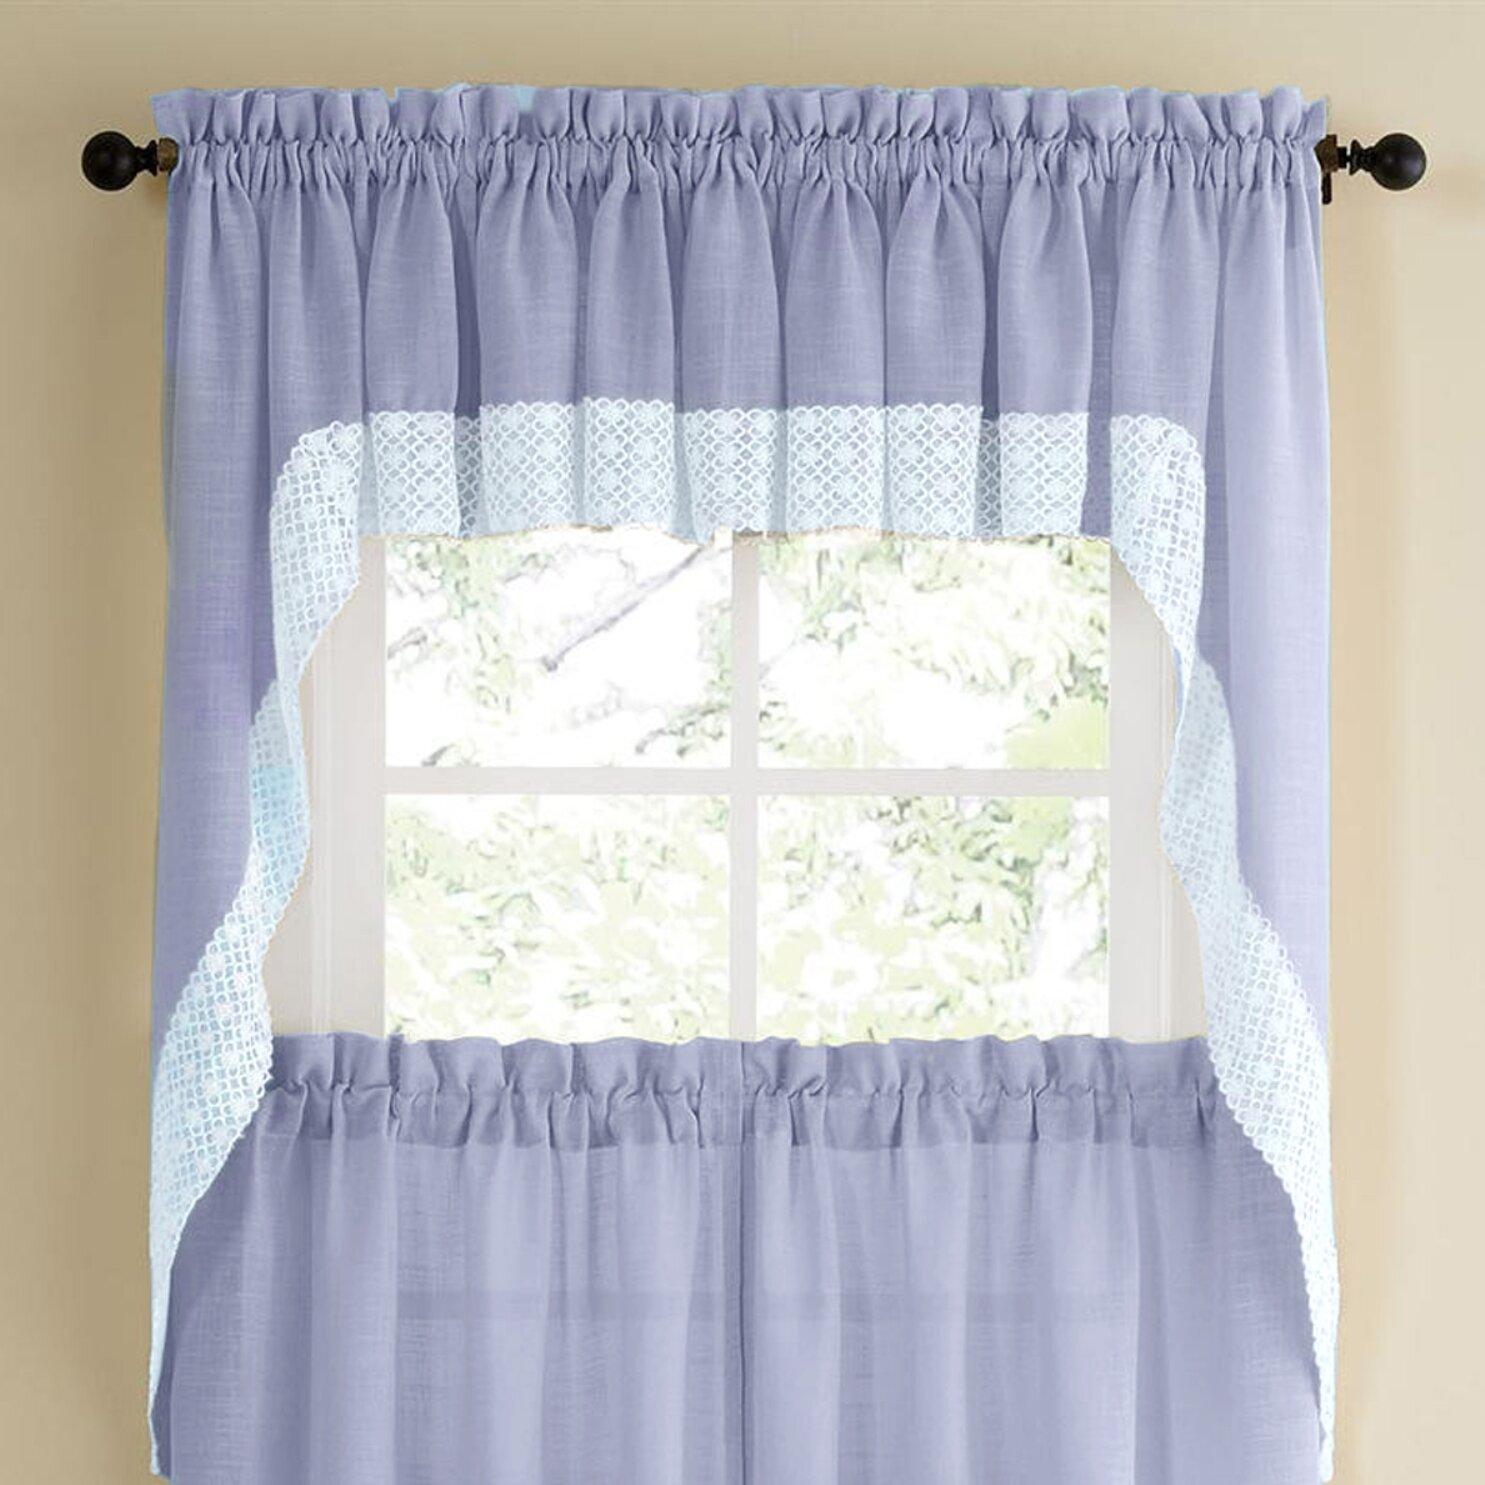 Kitchen Curtains And Valances: Sweet Home Collection Salem Kitchen Swag Curtain Valance